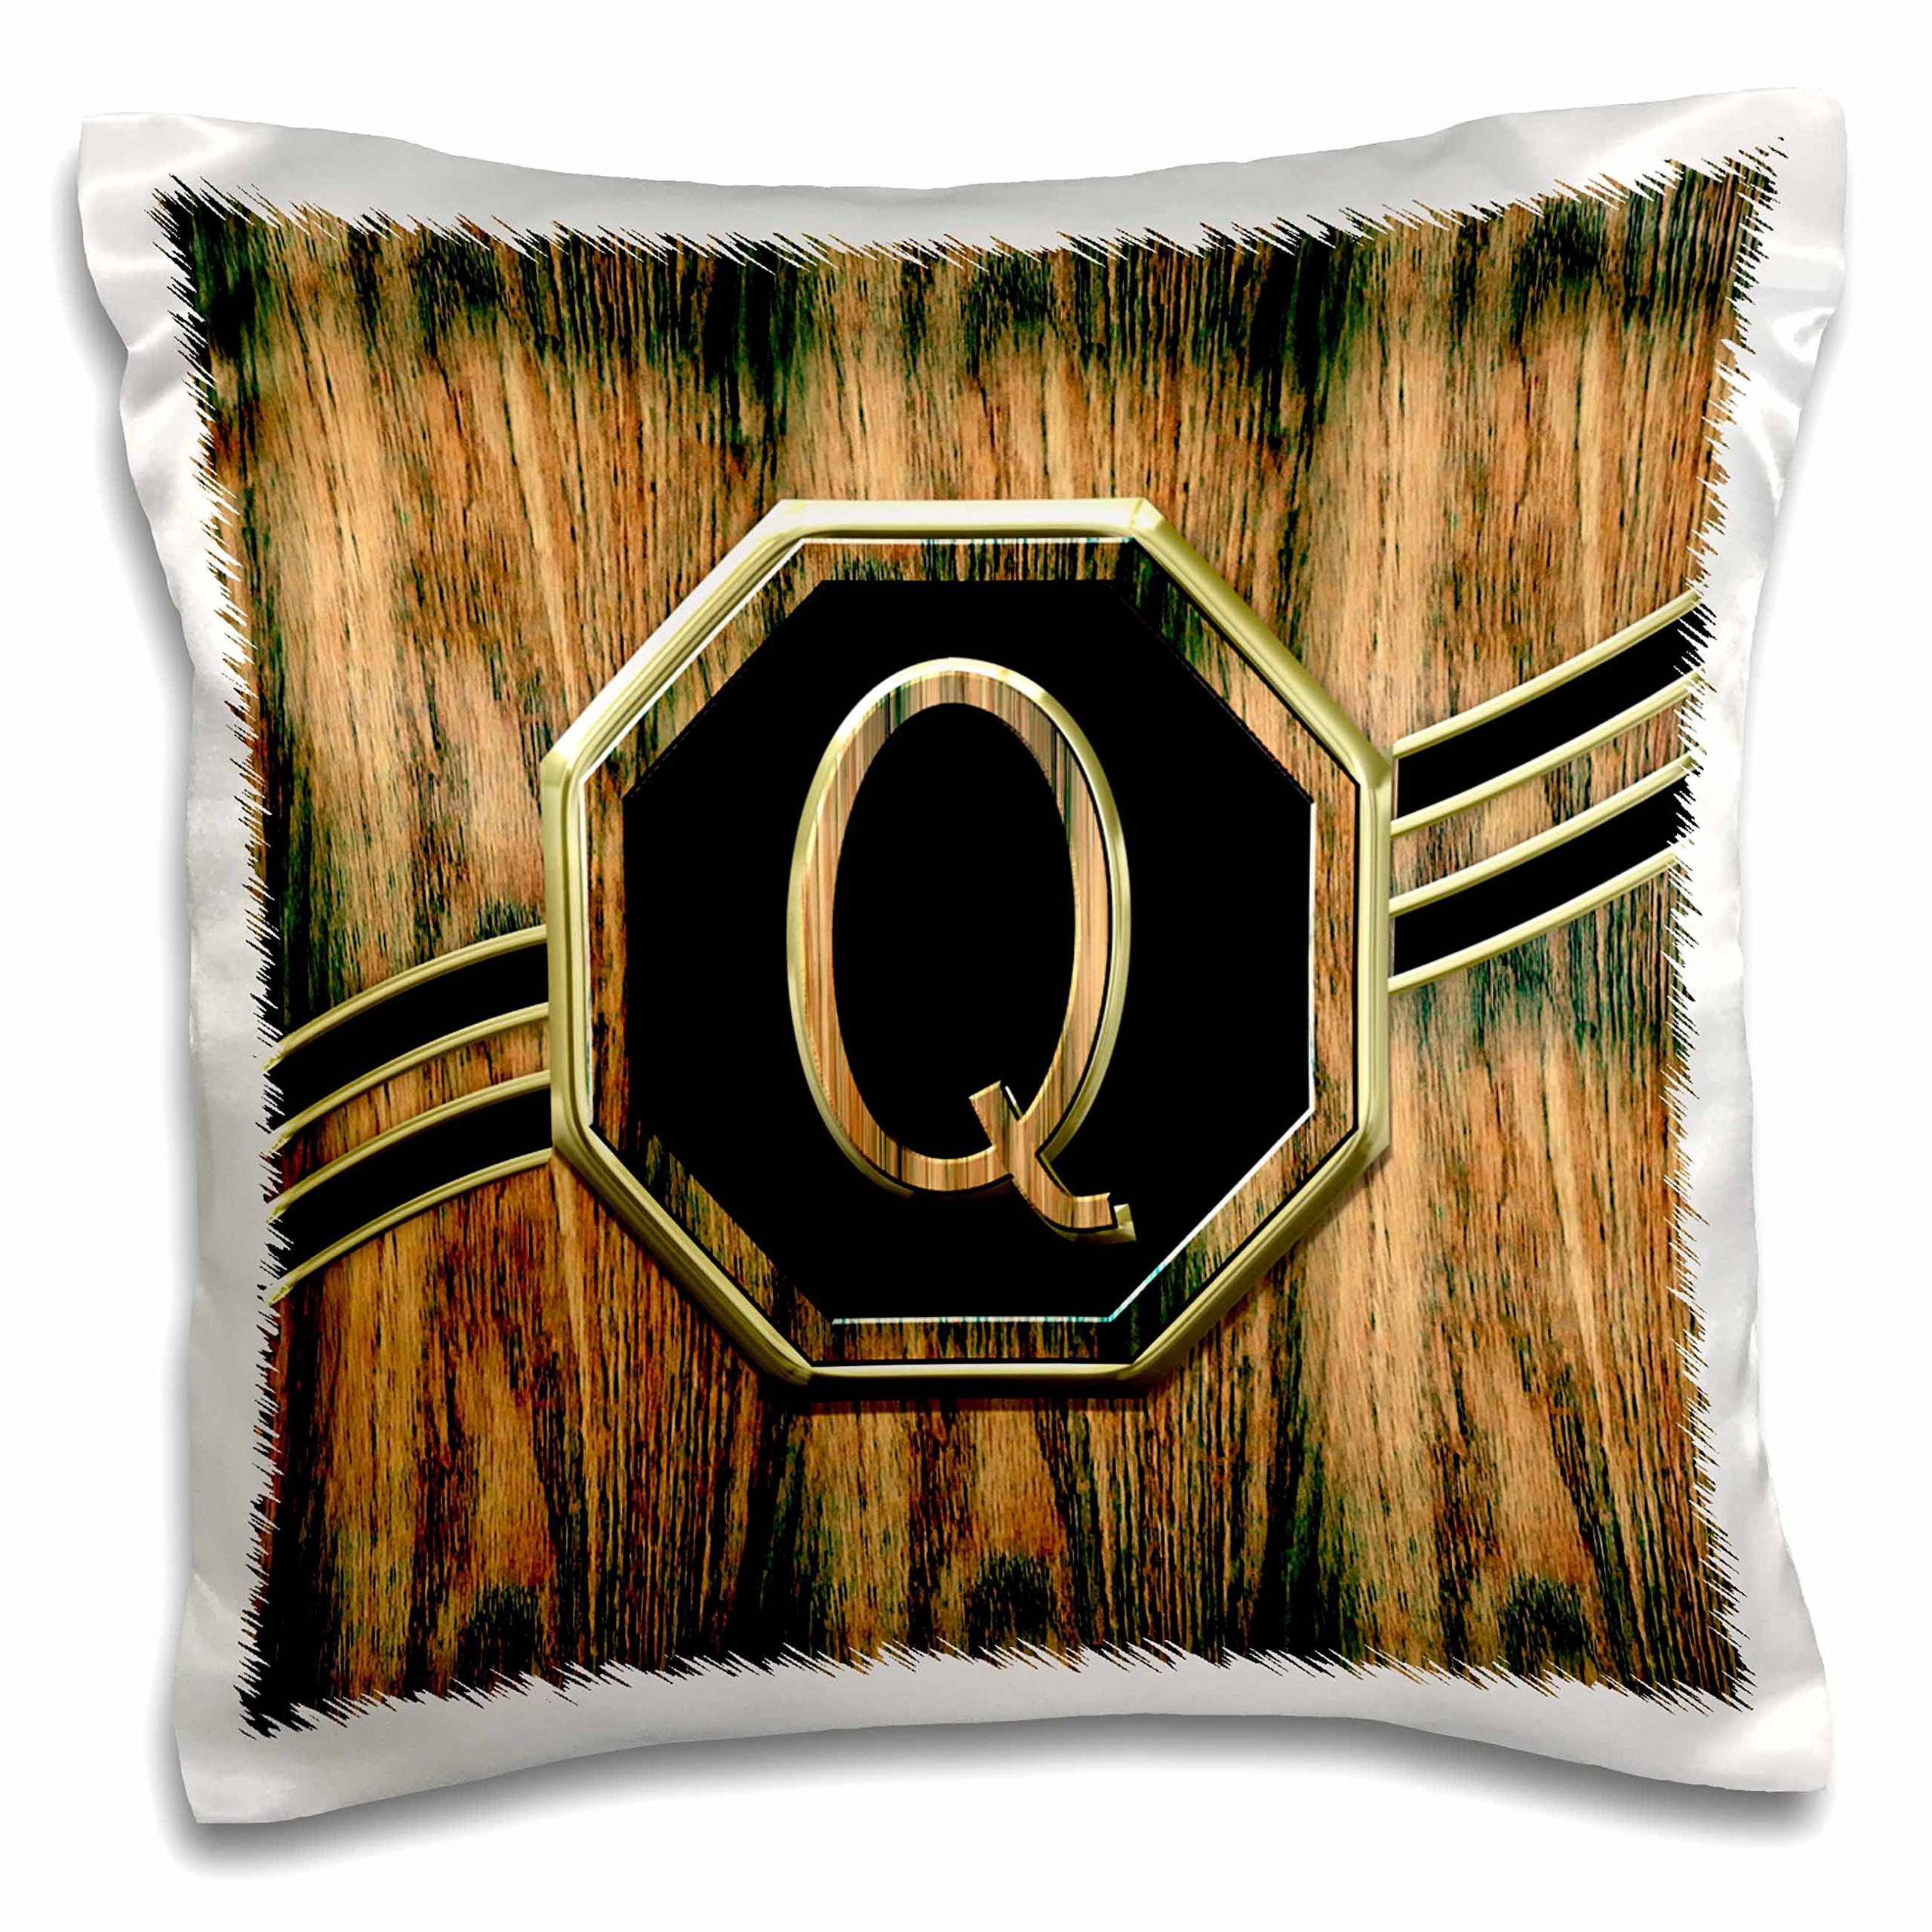 3D Rose Elegant Faux Gold and Wood Grain Monogram Letter Q Pillow Case, 16'' x 16''